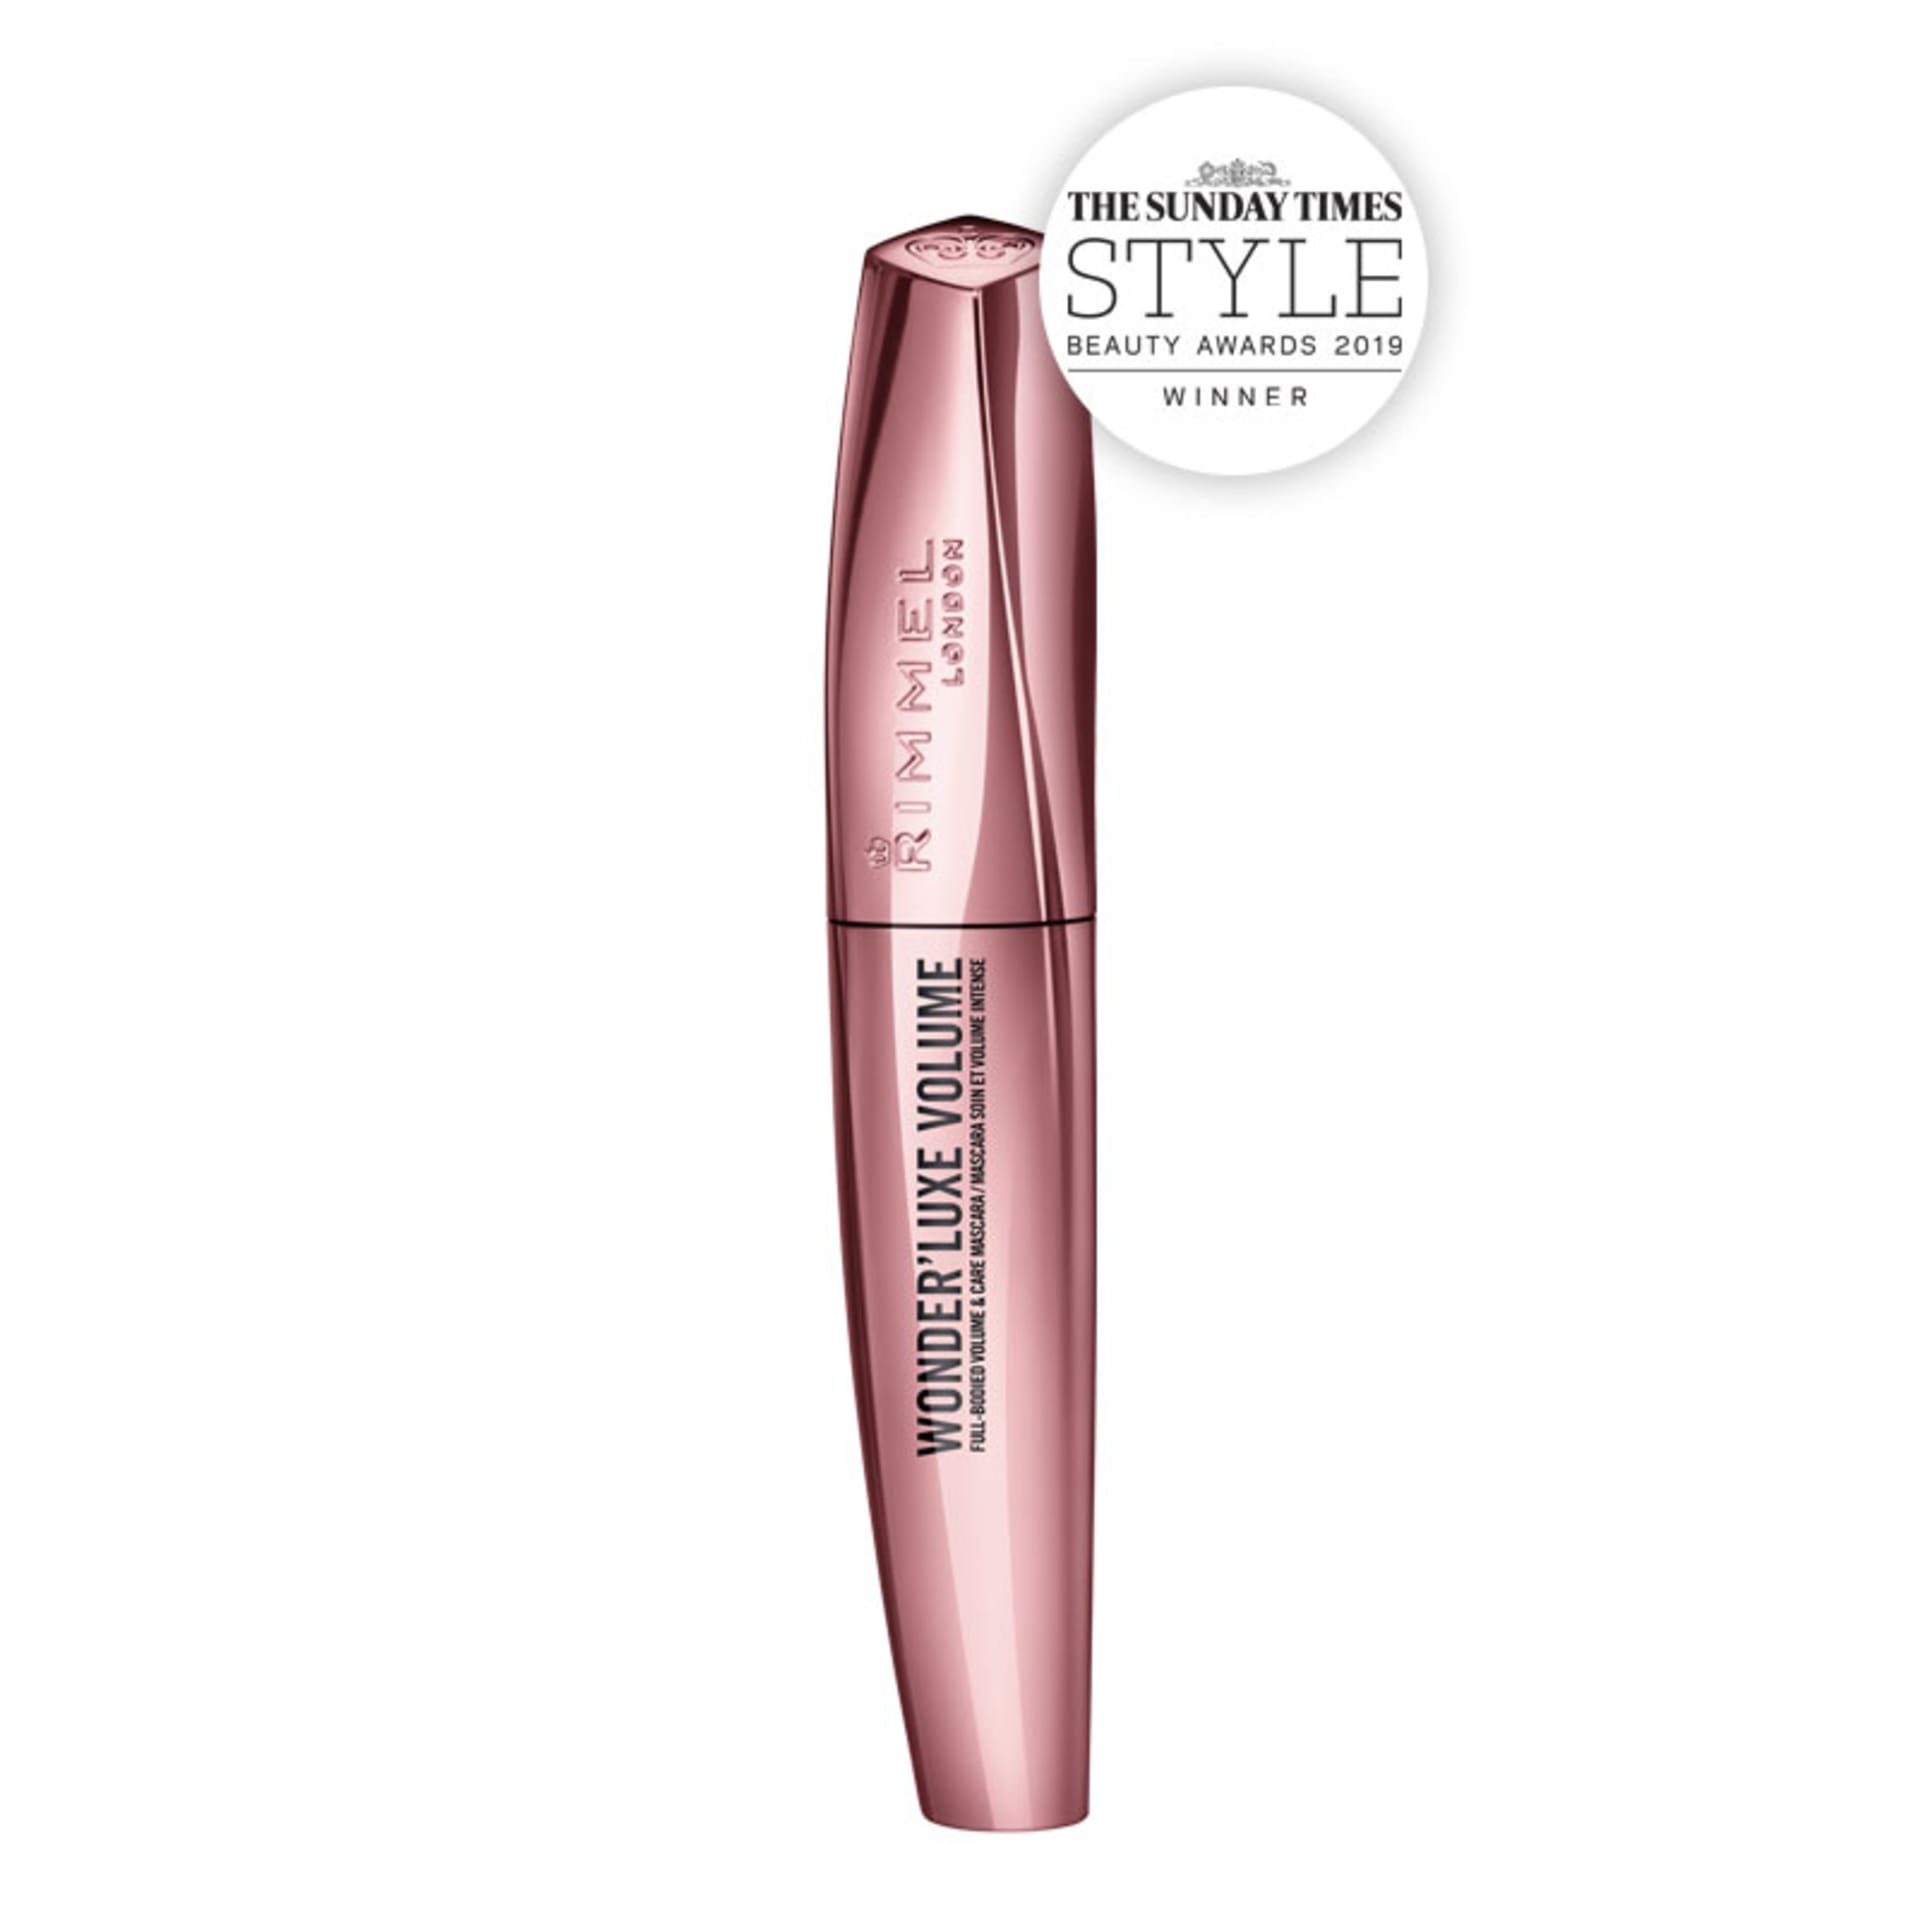 Wonderluxe Volume Mascara